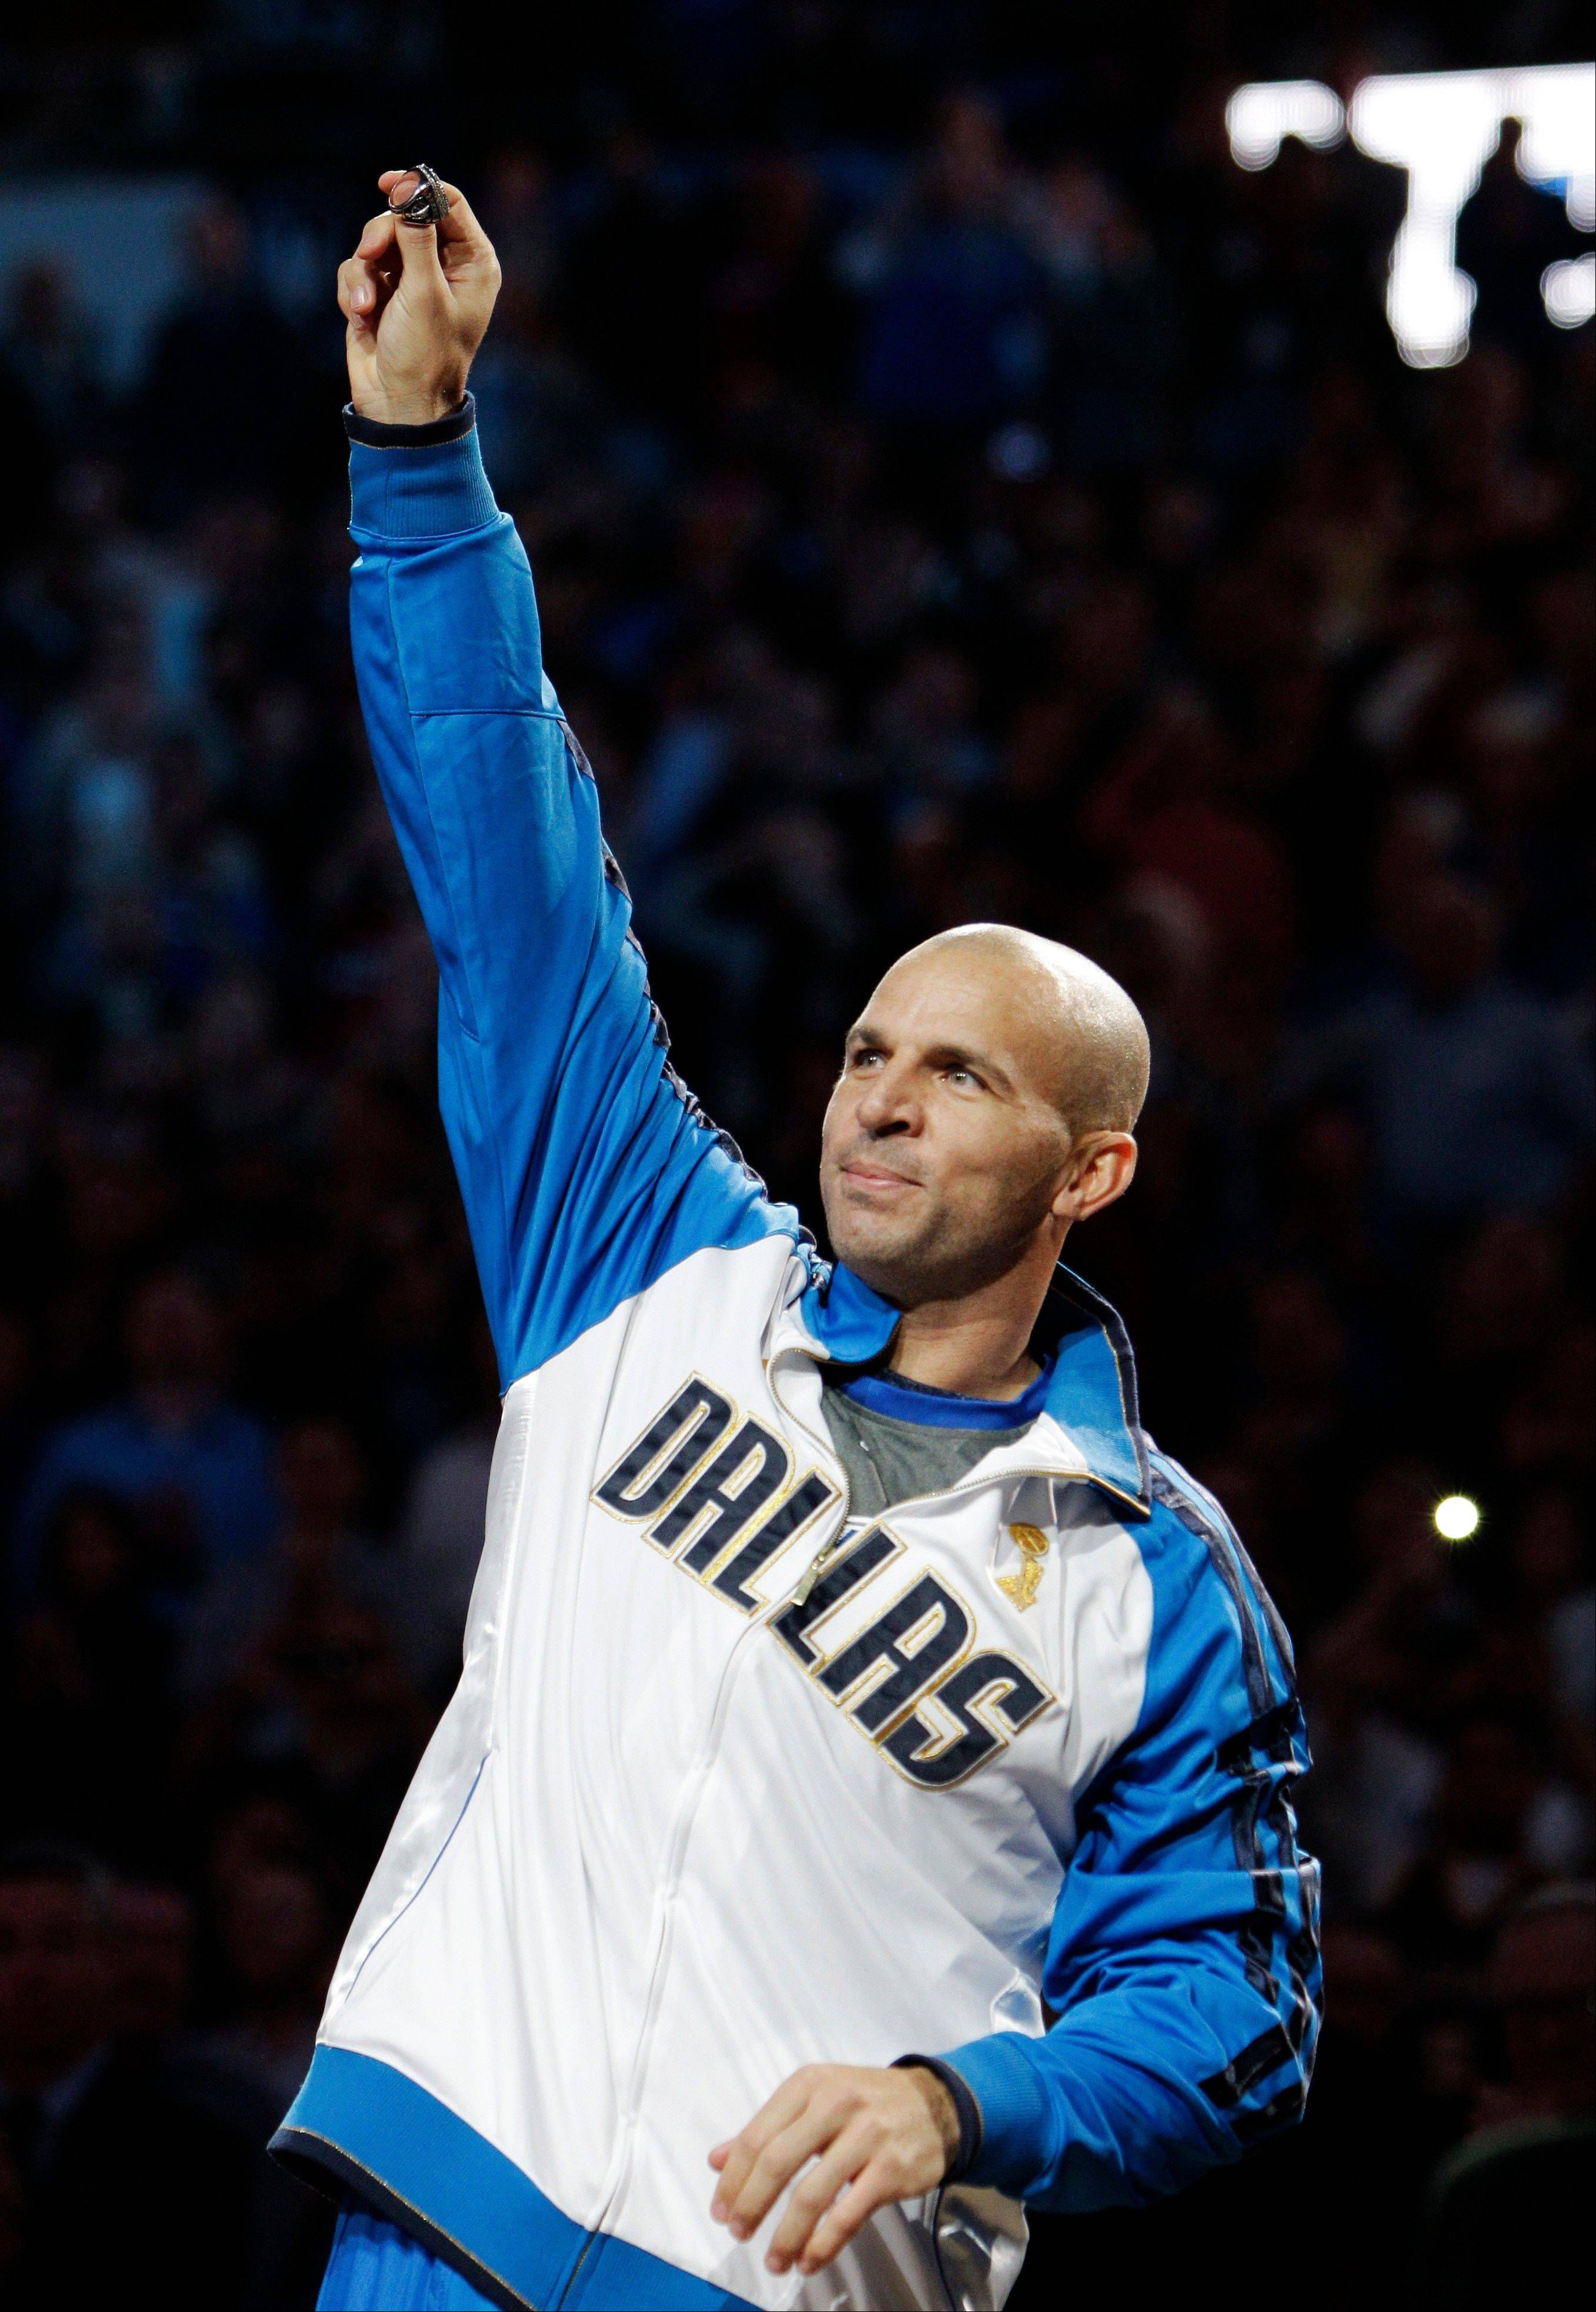 Free agent guard Jason Kidd isn't ruling out the Bulls as a possible destination next season.